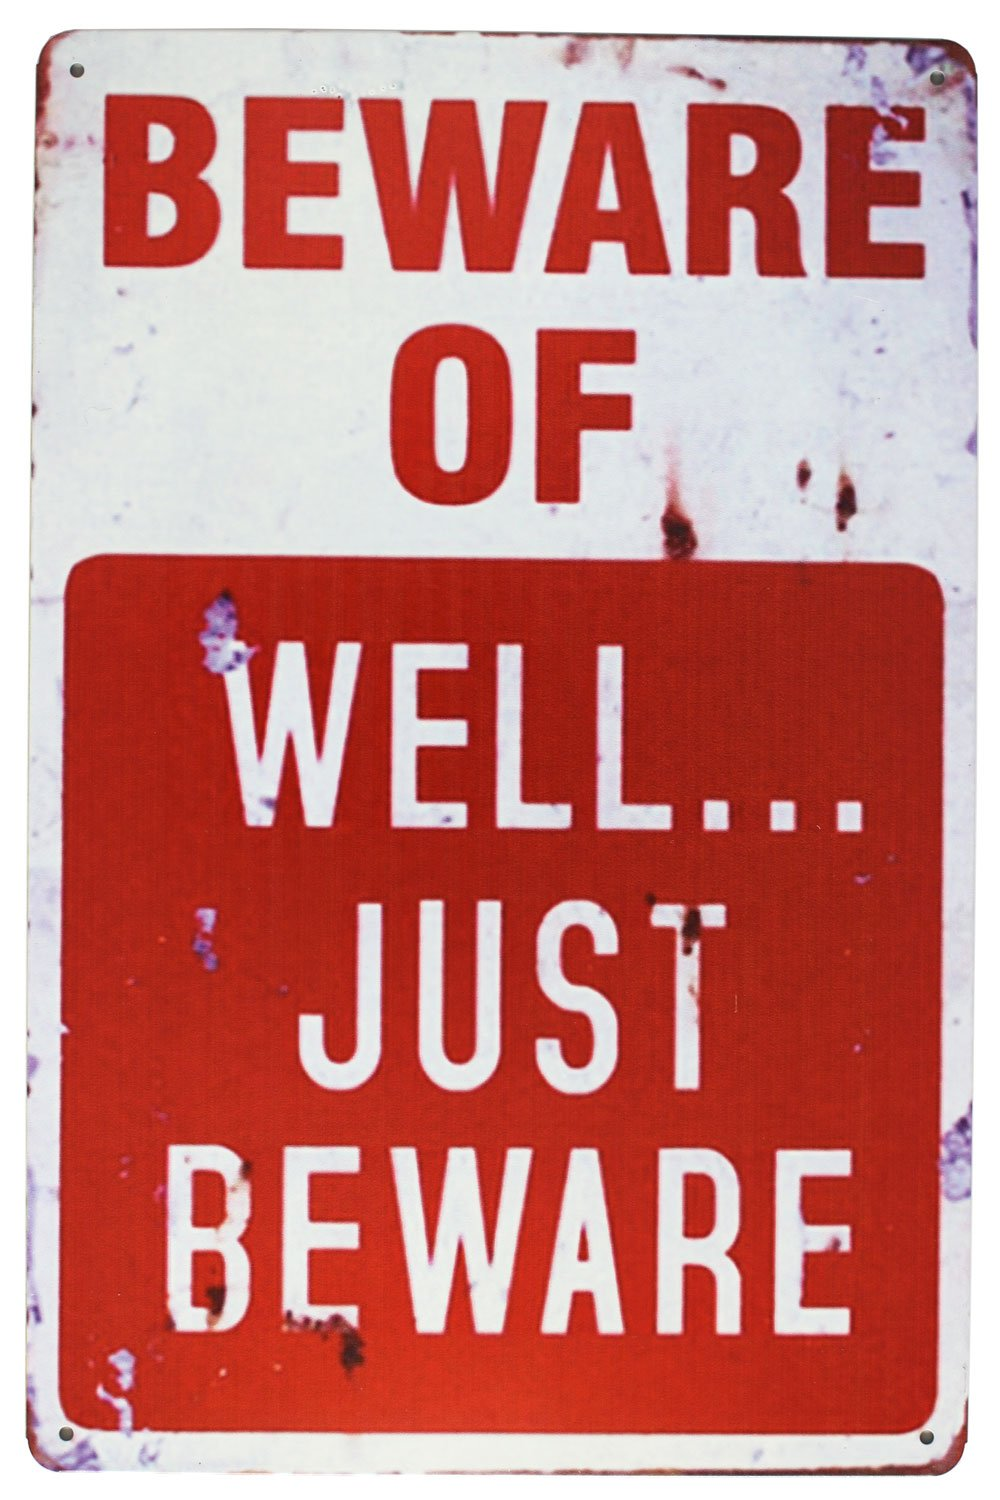 SUMIK Beware of Well JUST Beware Metal Tin Sign Vintage Plaque Art Poster Garage Man Cave Home Wall Decor China